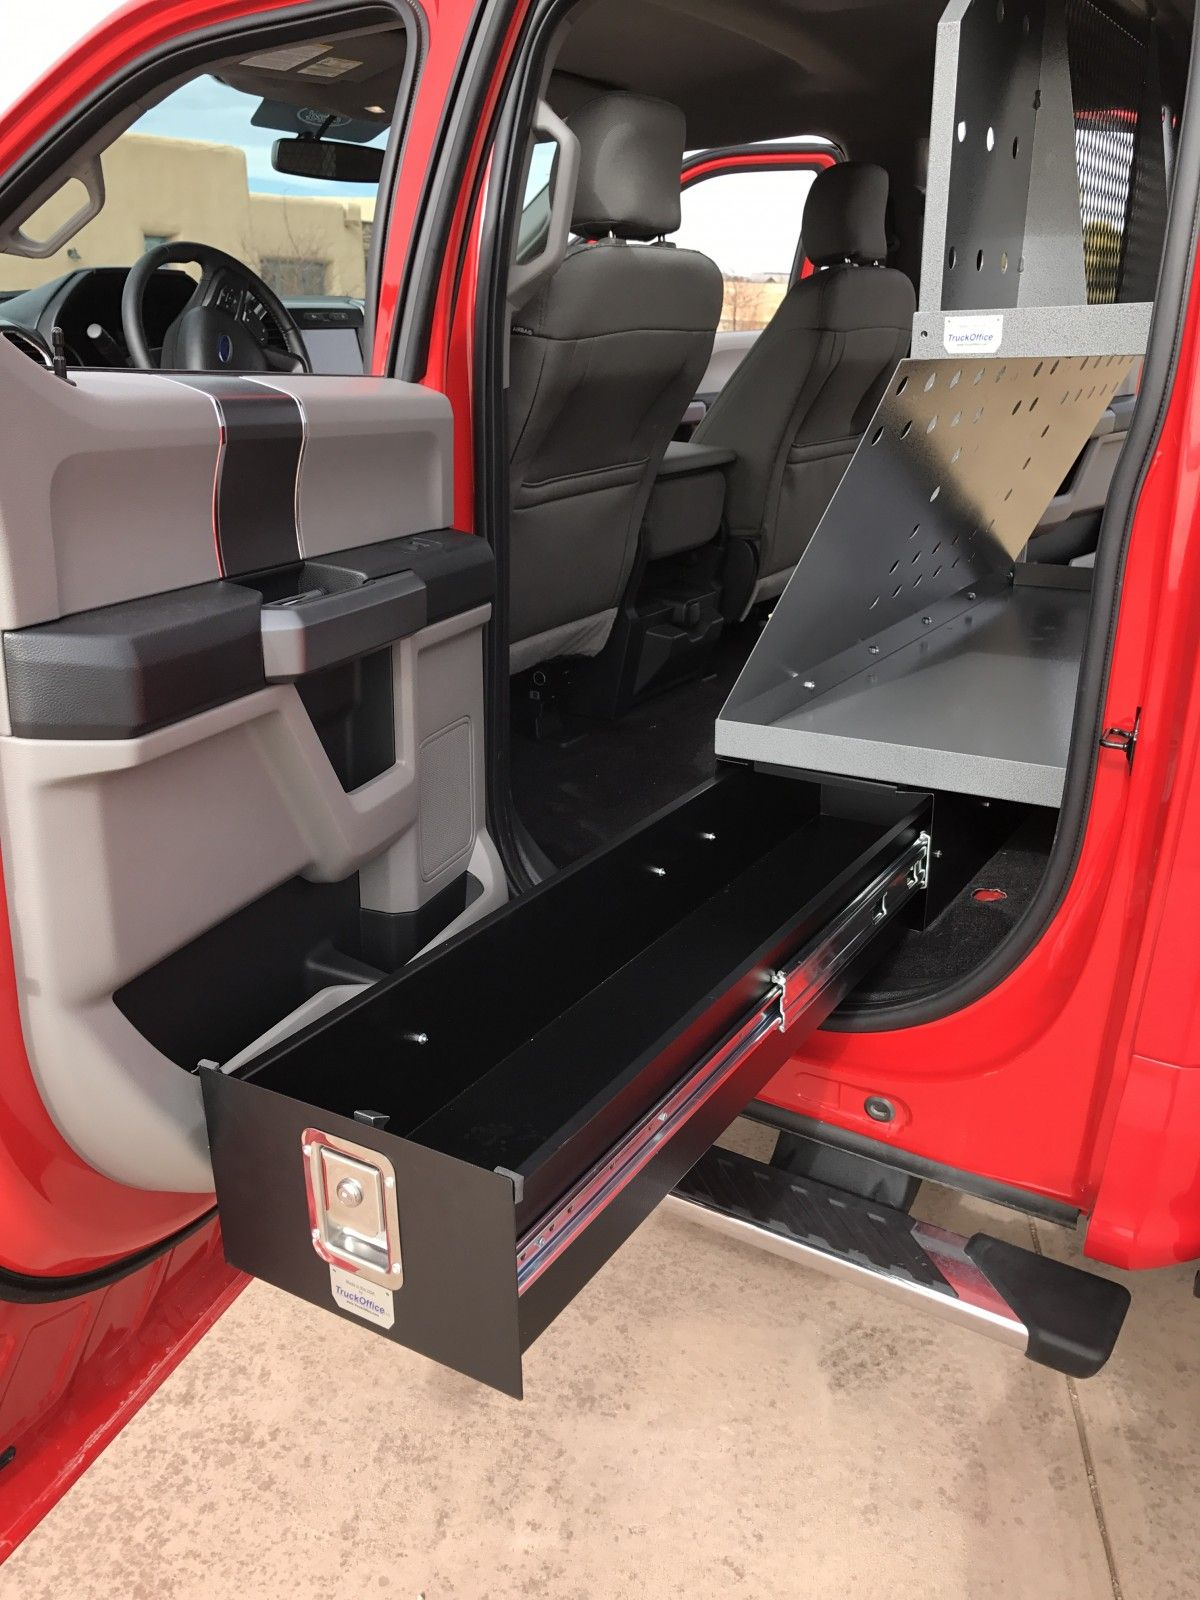 Products Overview - Truckoffice Truck Cab Storage Systems